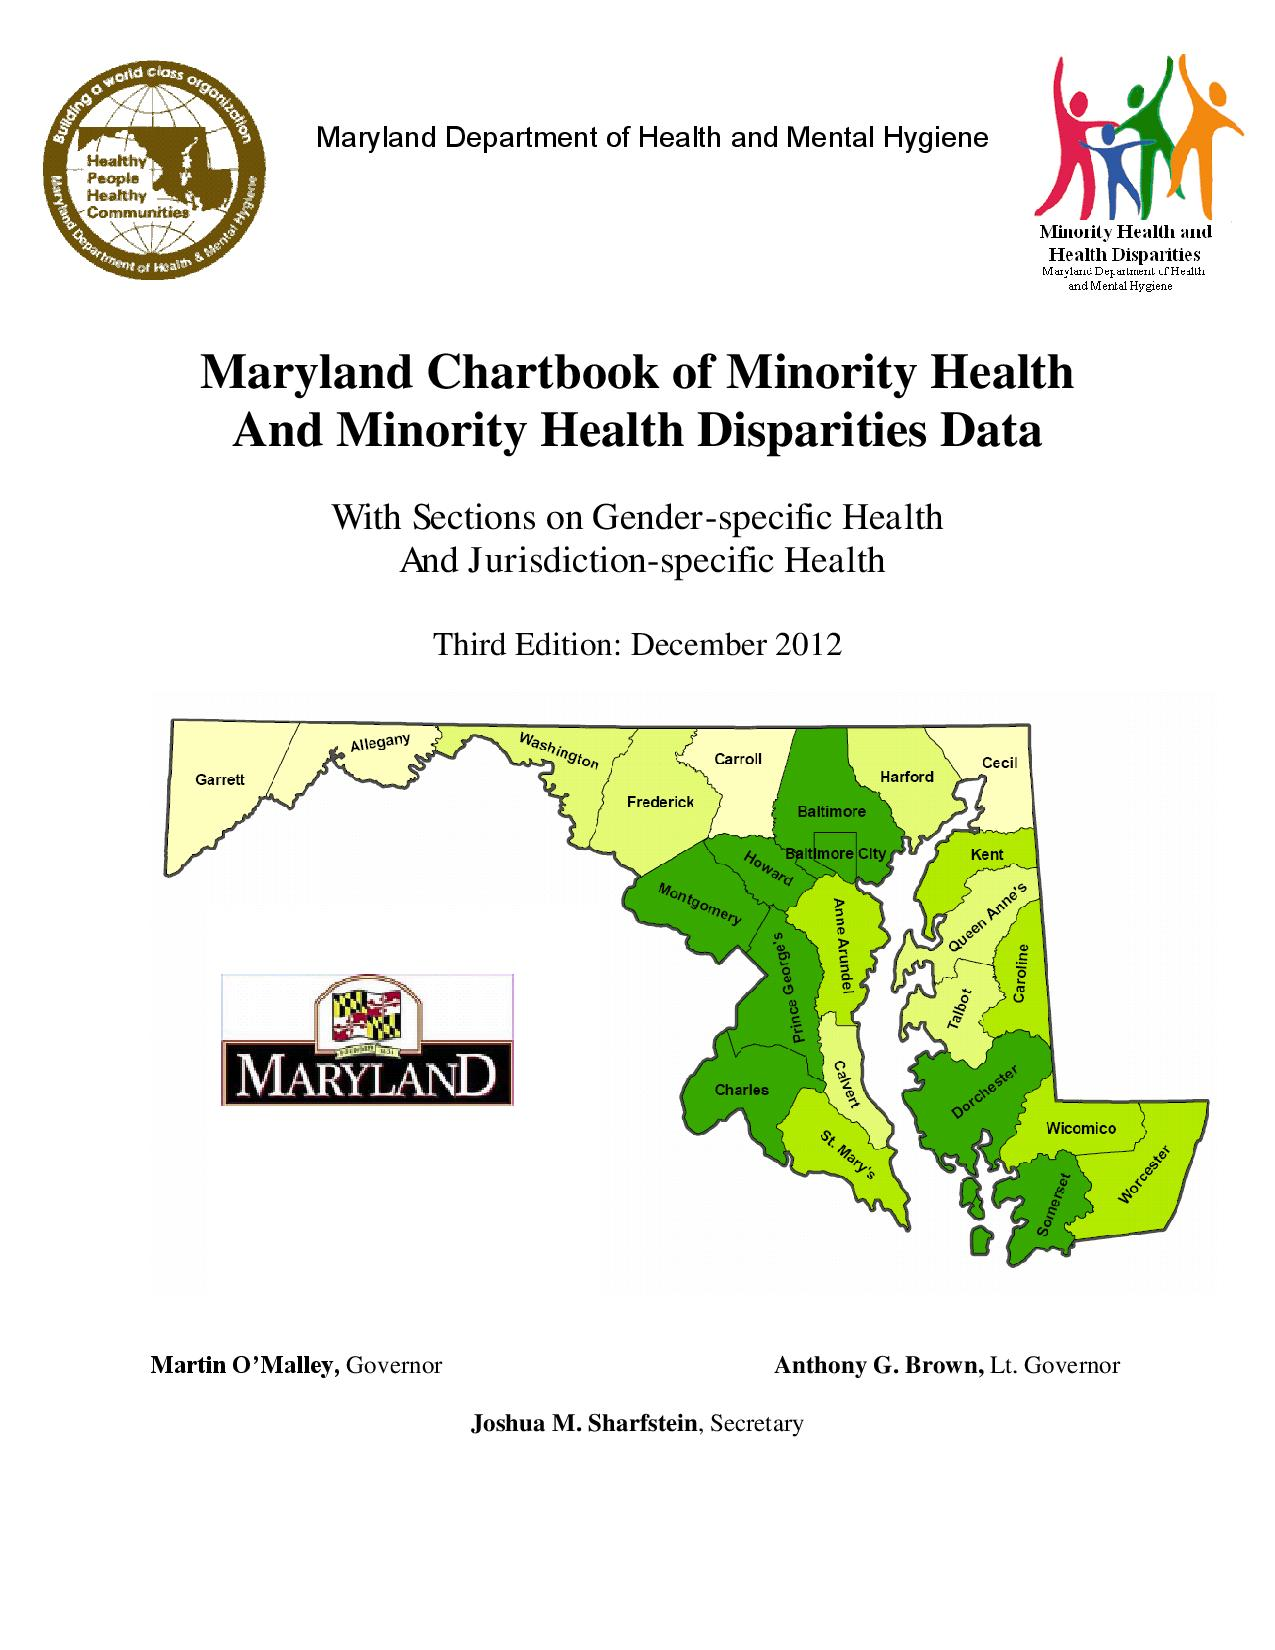 Maryland Chartbook of Minority Health and Minority Health Disparities Data, Third Edition (December 2012)-page-001.jpg